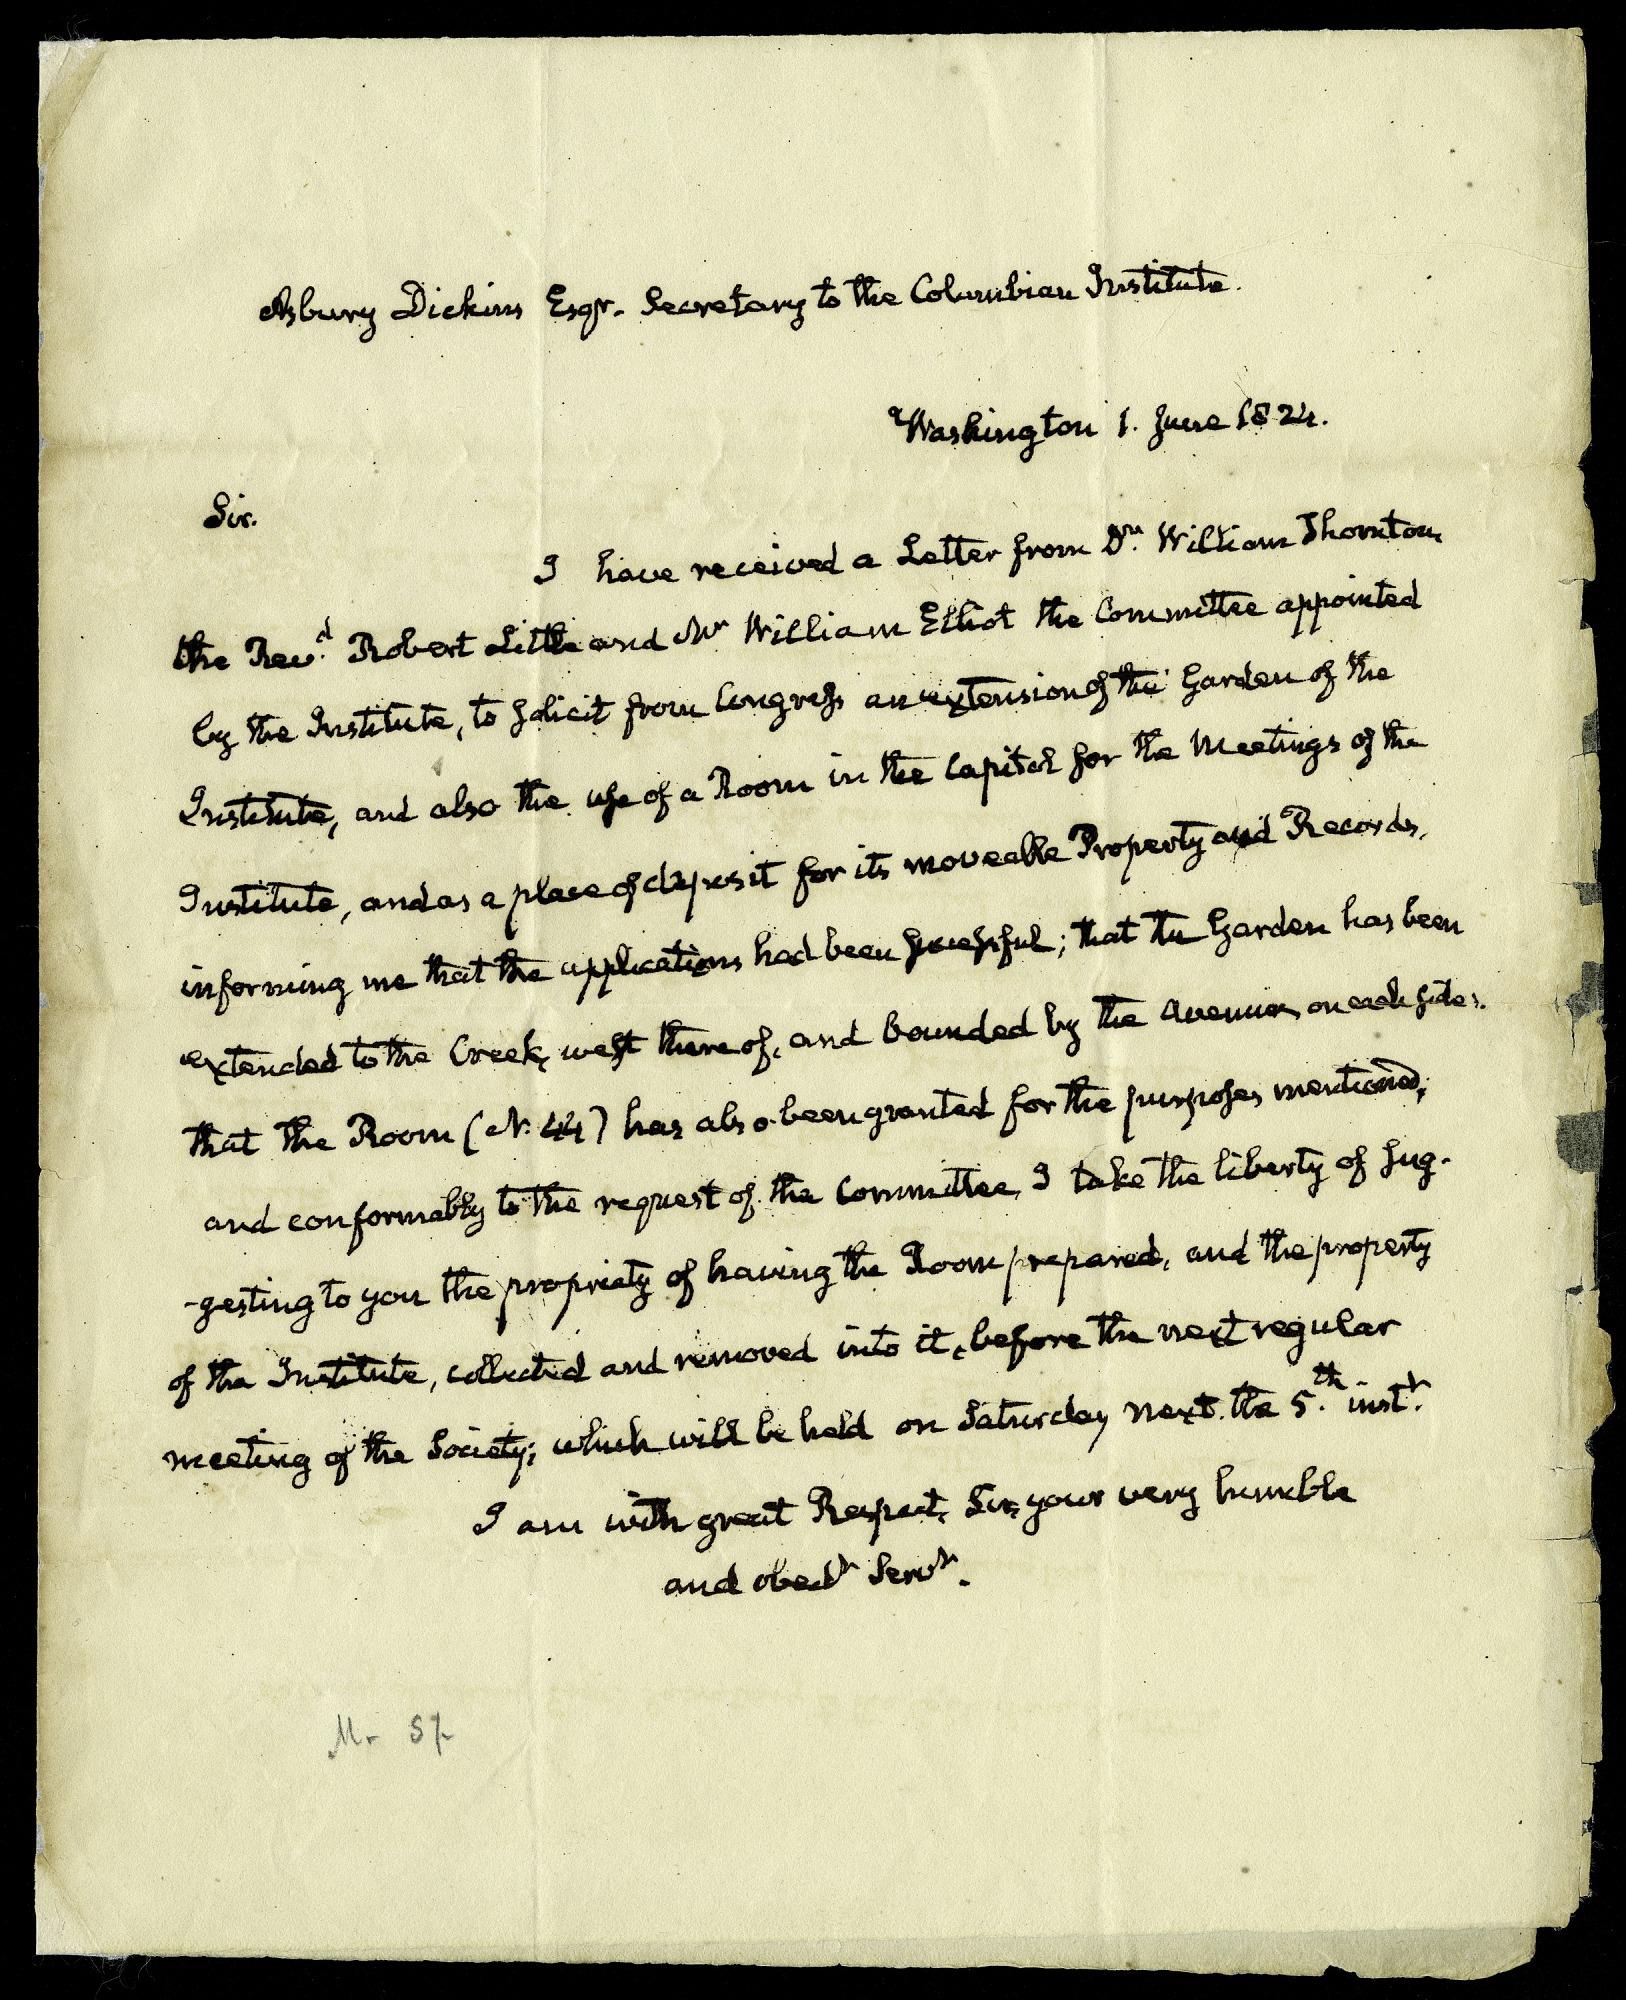 Letter from John Quincy Adams to Asbury Dickens, Secretary of the Columbian Institute, June 1, 1824